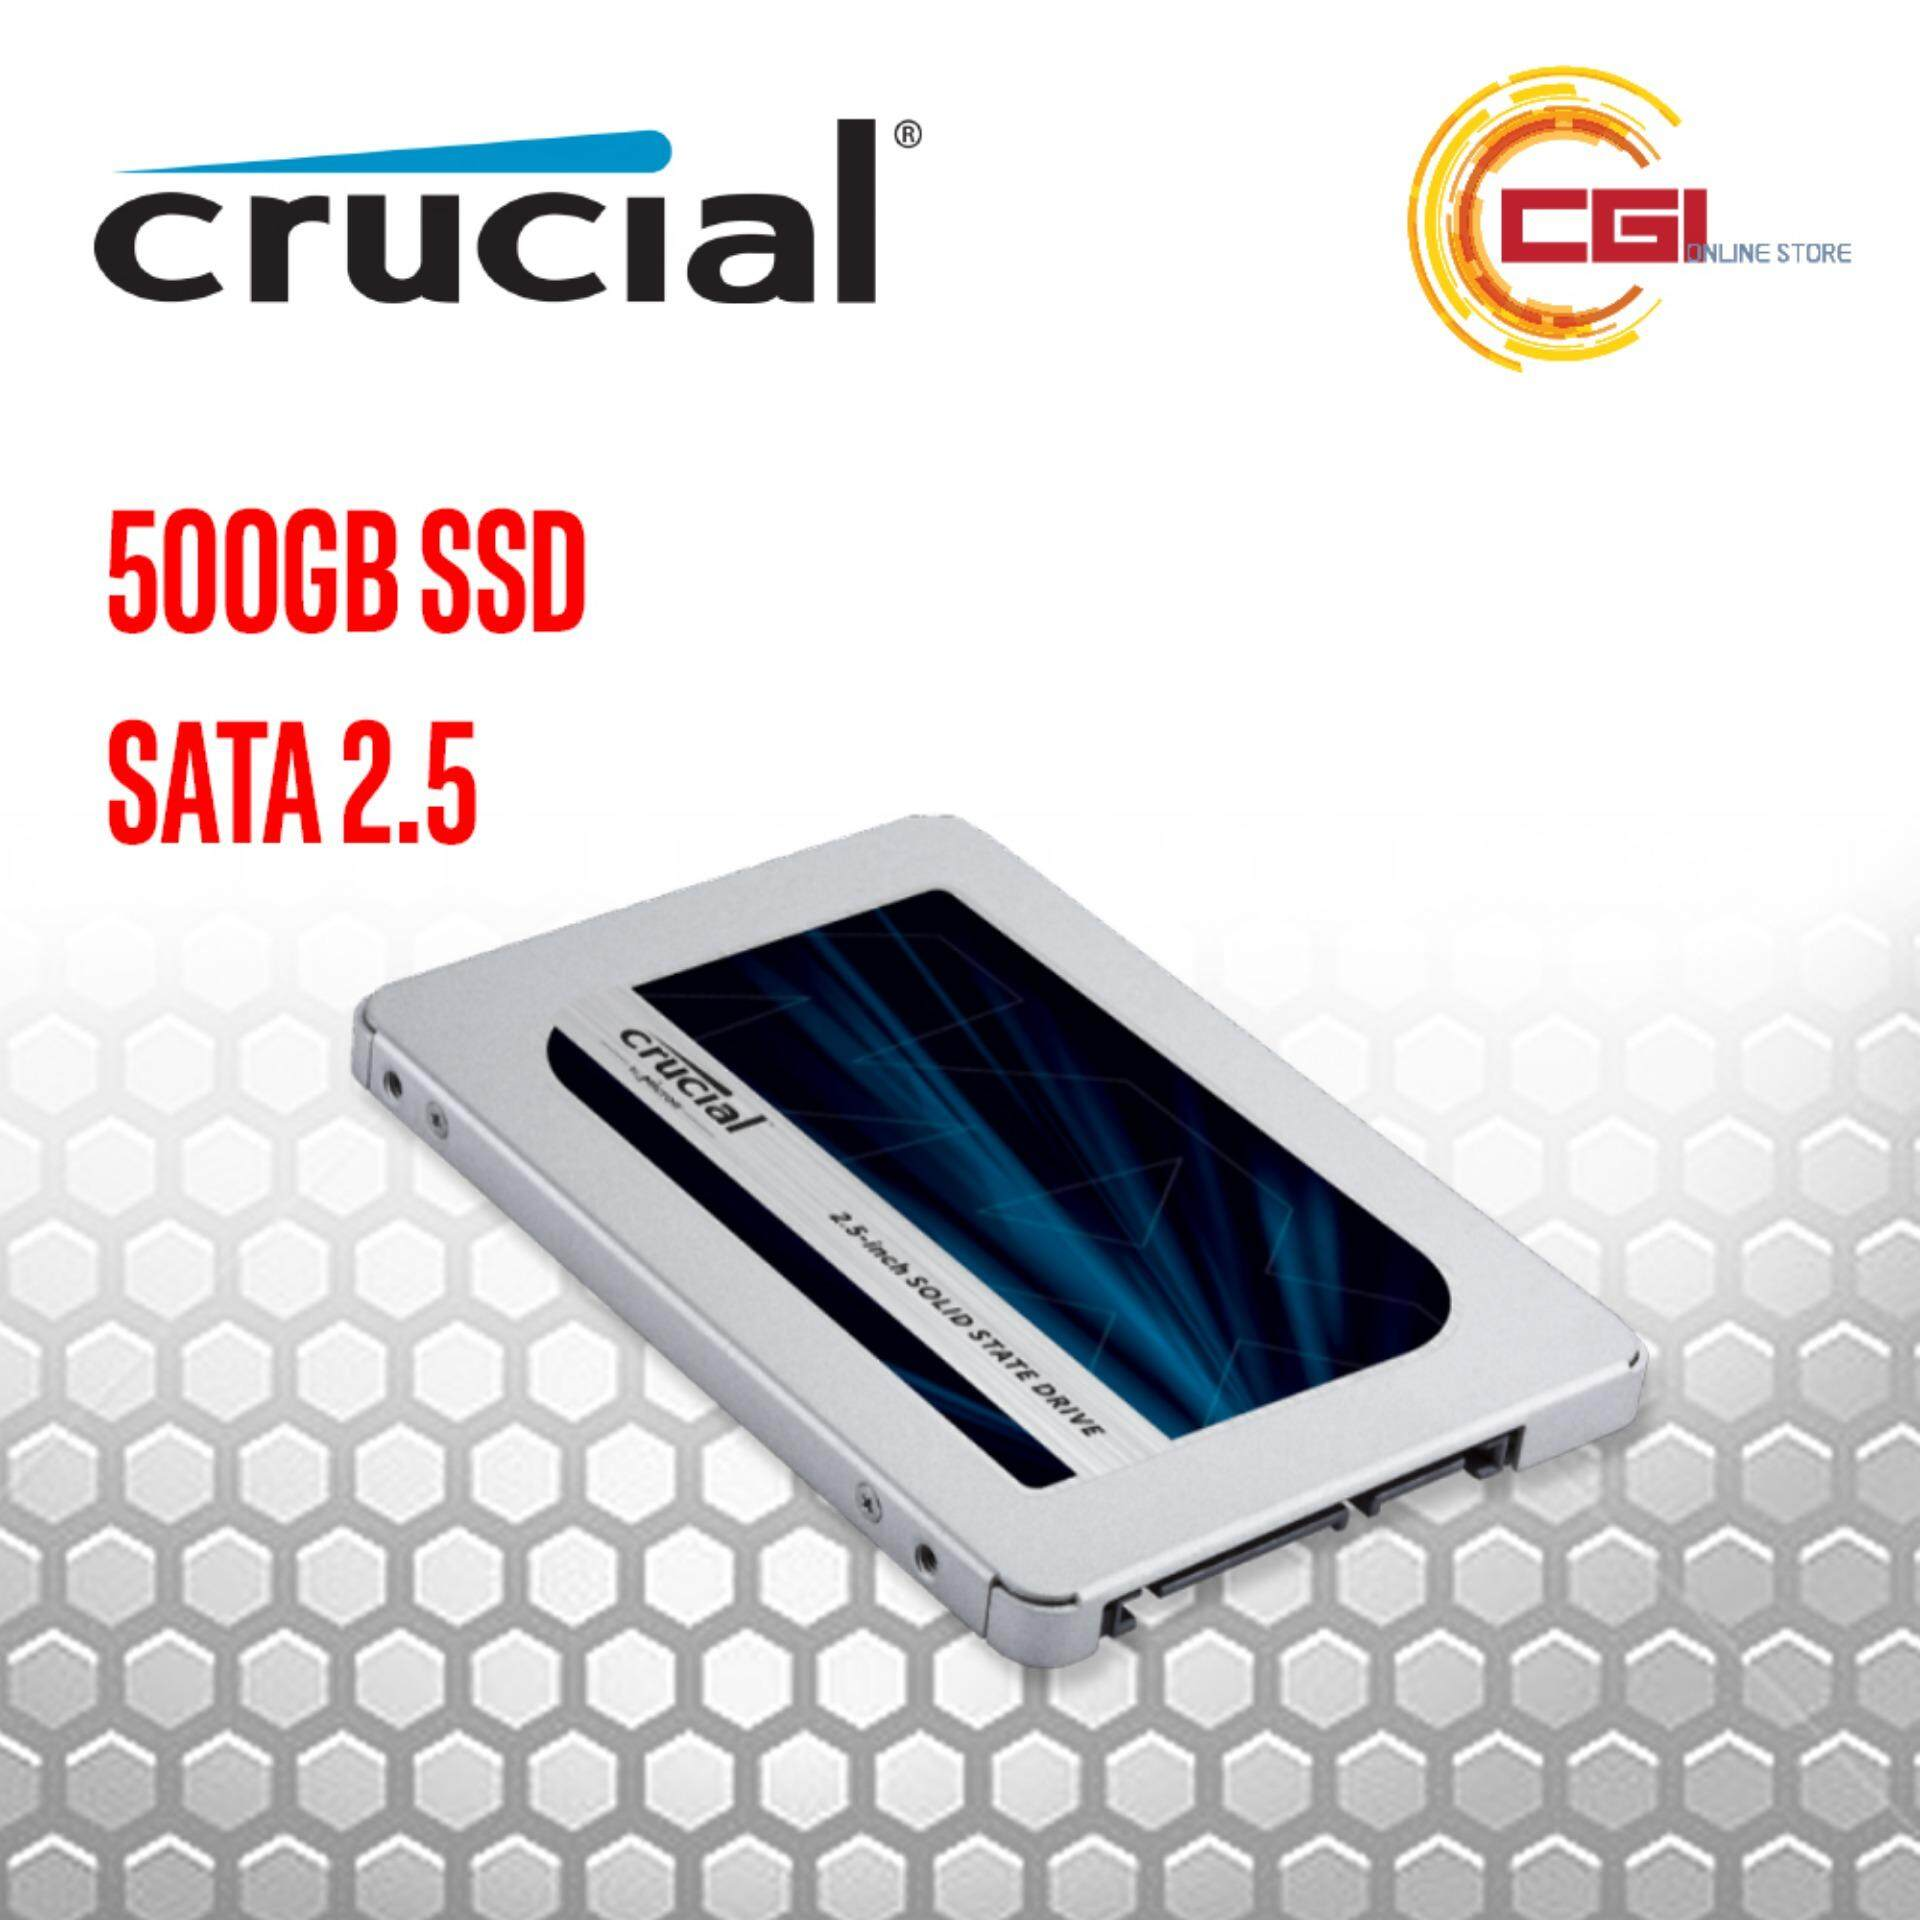 Crucial - Buy Crucial at Best Price in Malaysia   www lazada com my